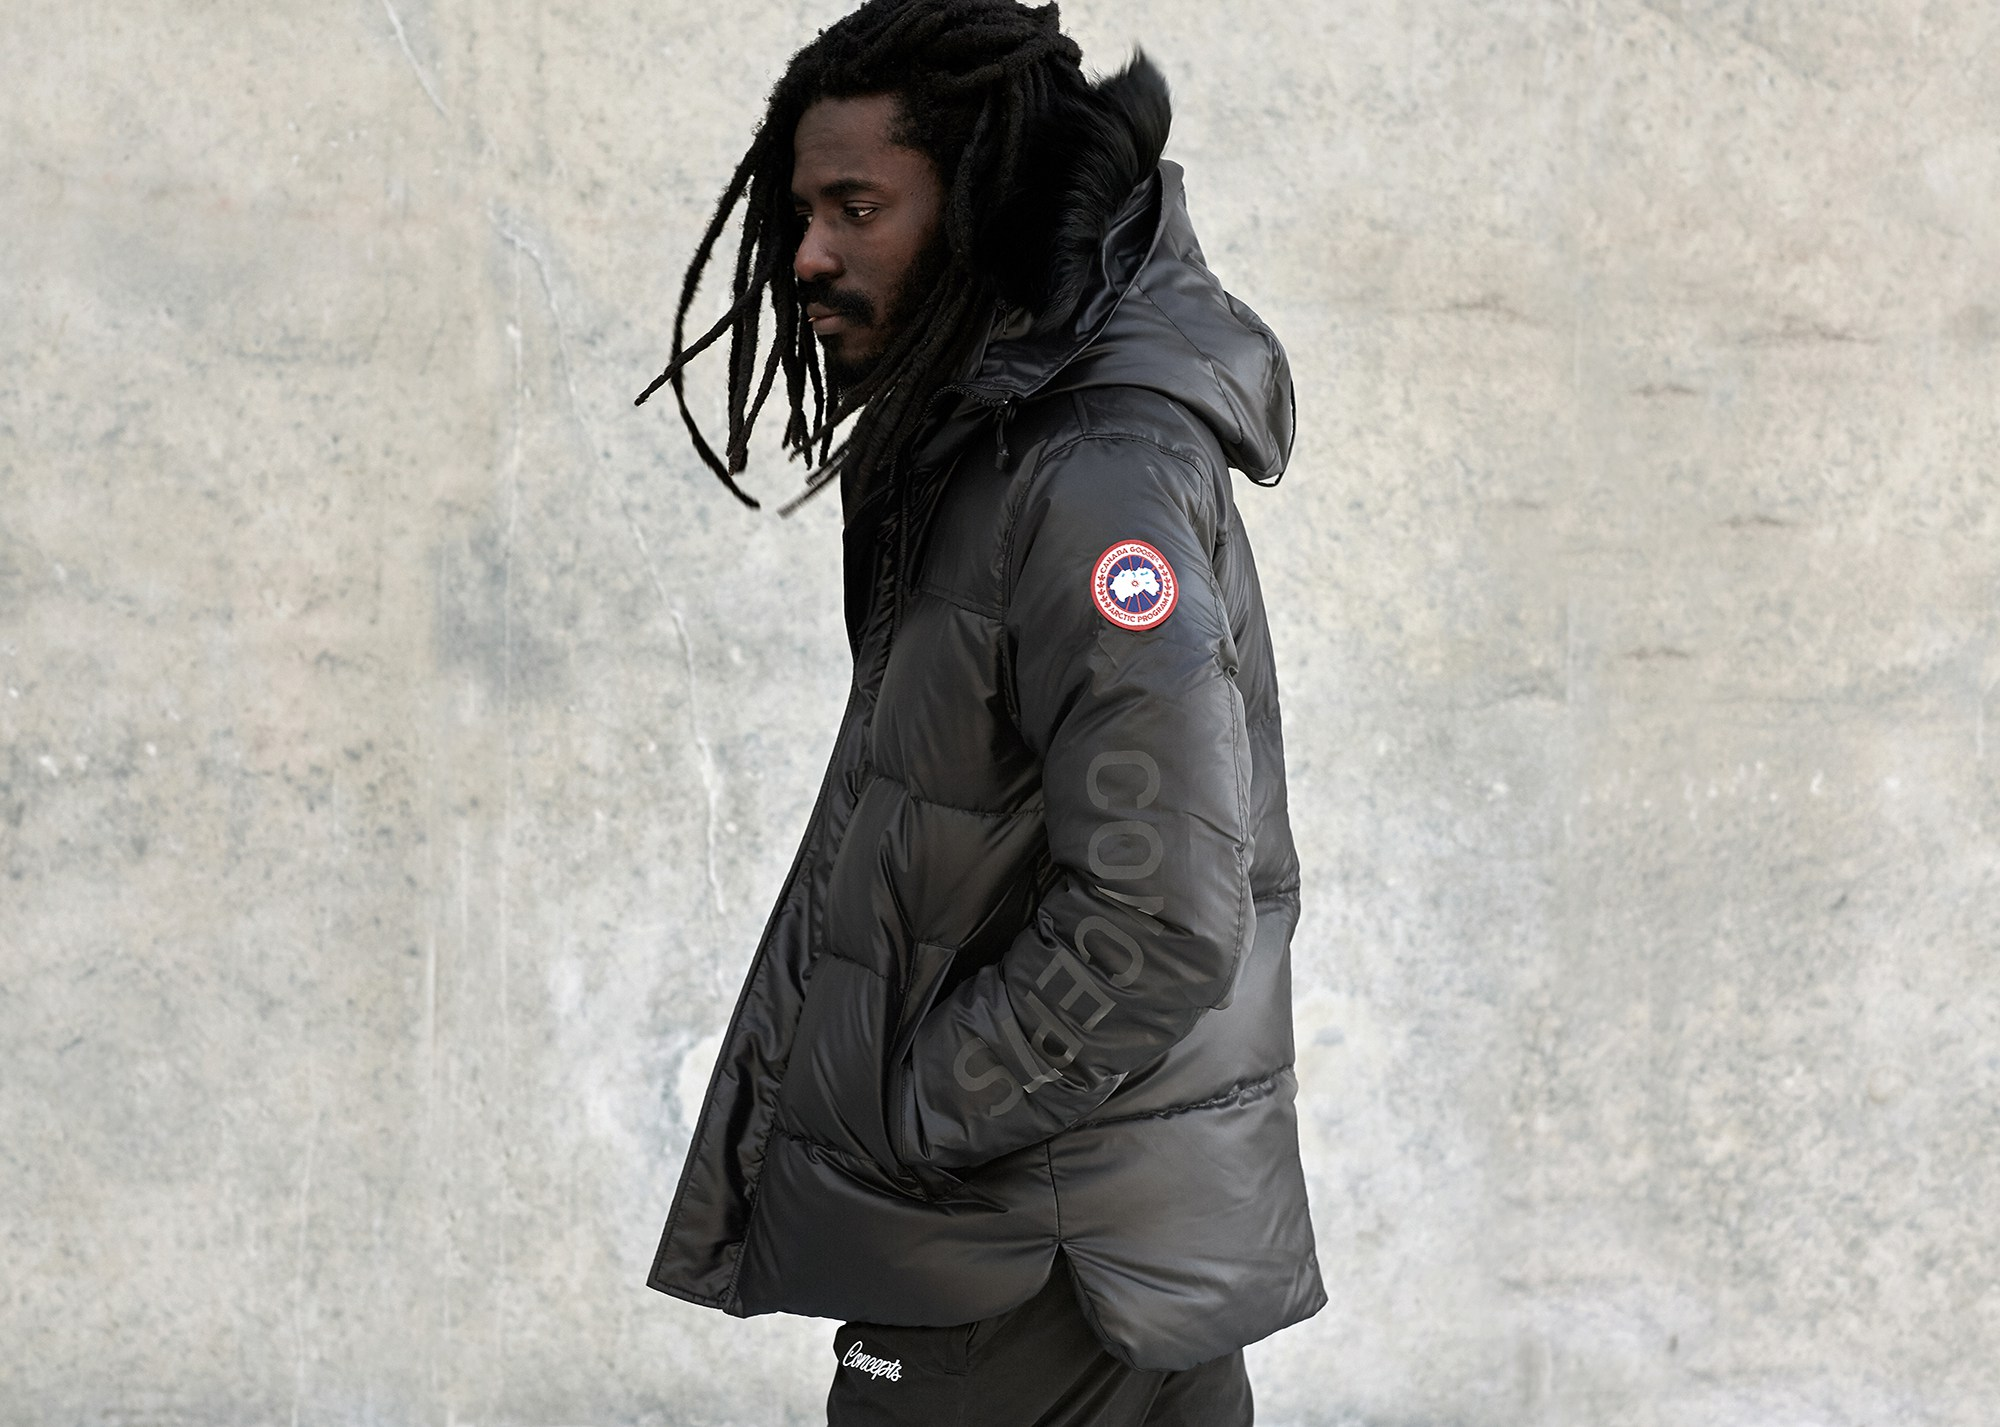 james bond canada goose jacket